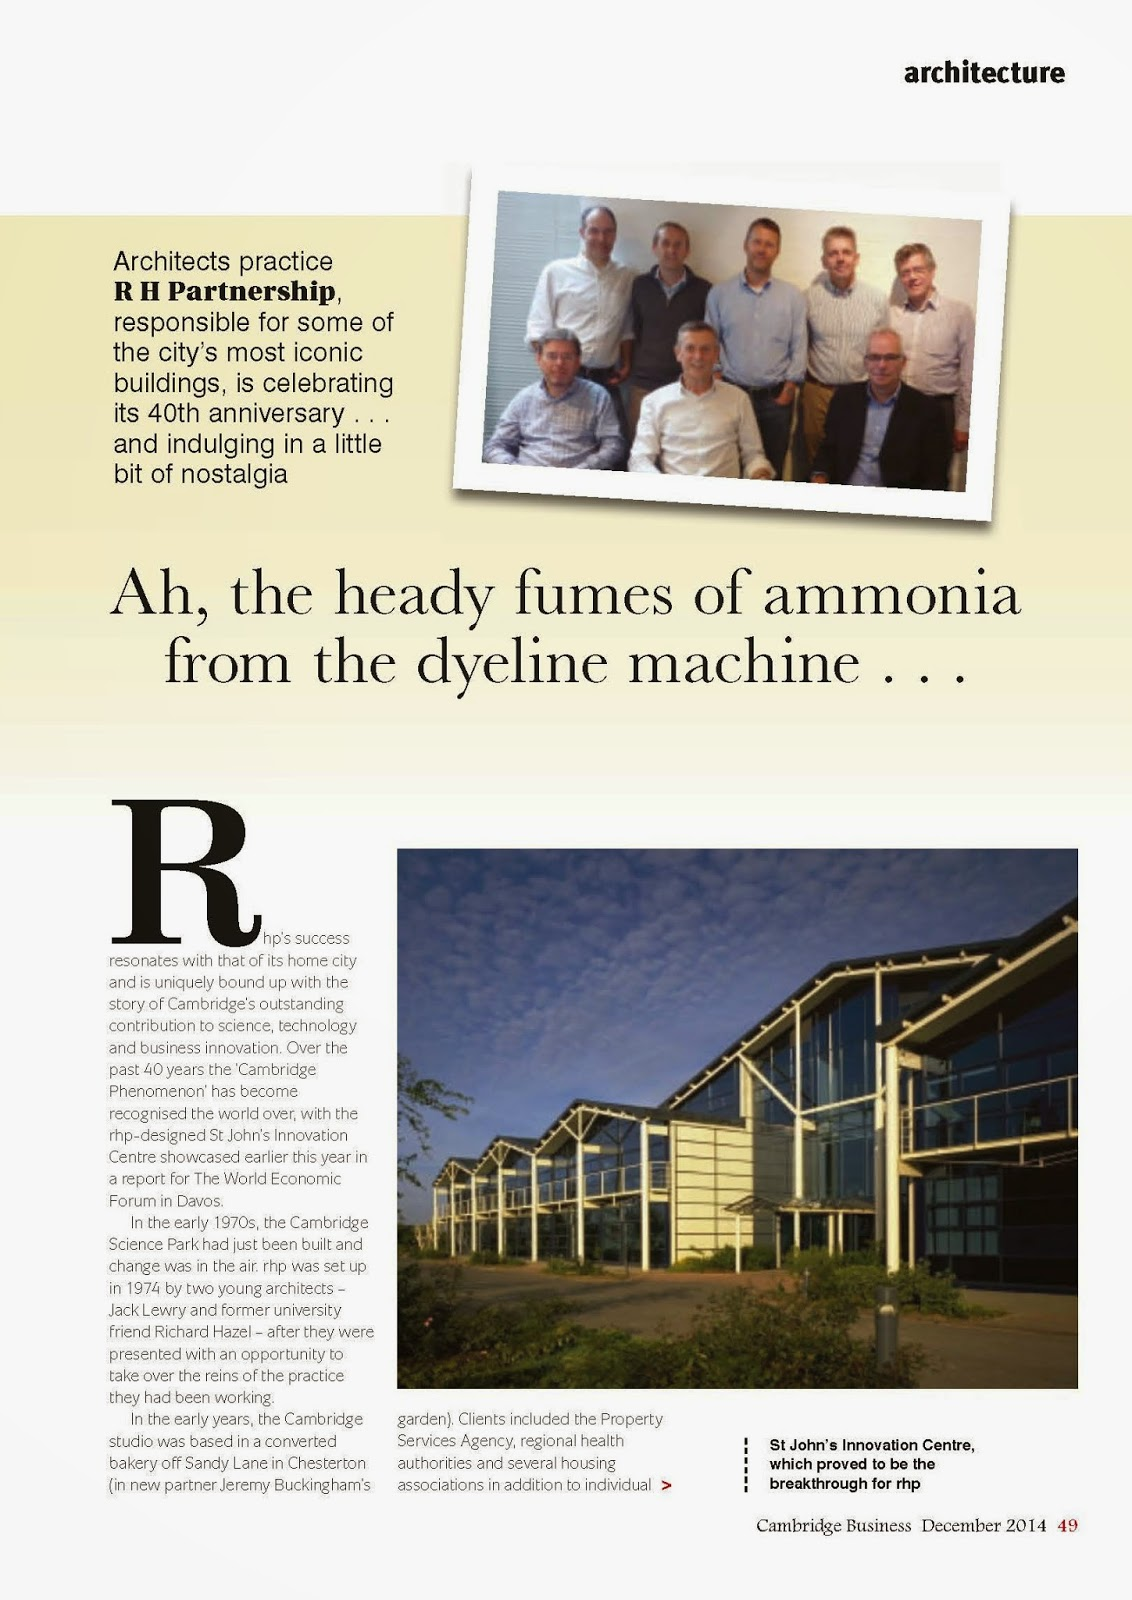 Cambridge Business Magazine Celebrates 40 Years of rhp